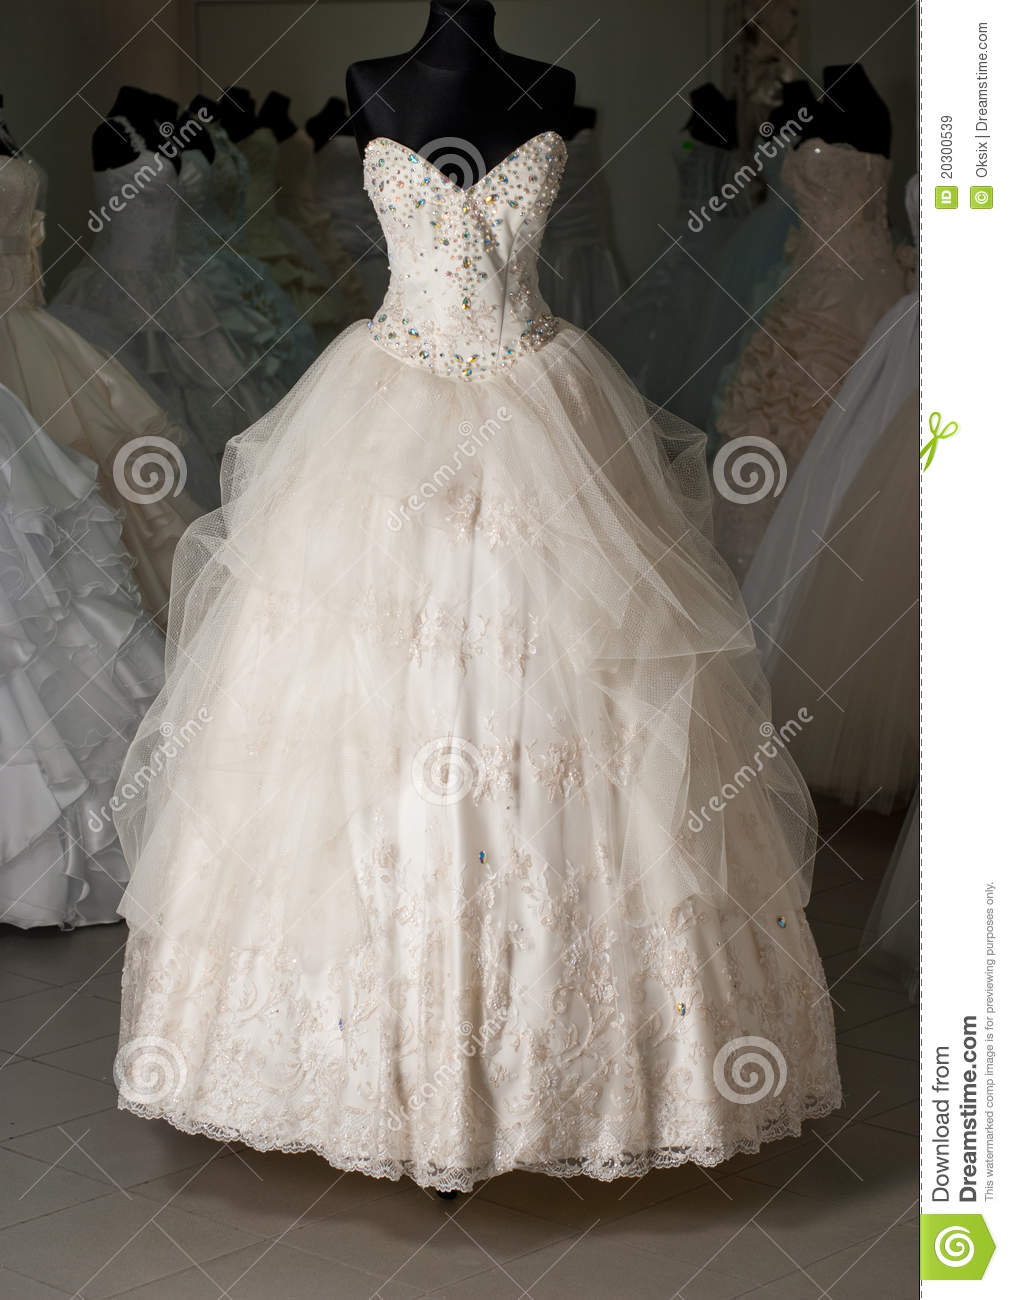 sell my wedding dress to a store wedding dress shop stock image image of dress selling 7289